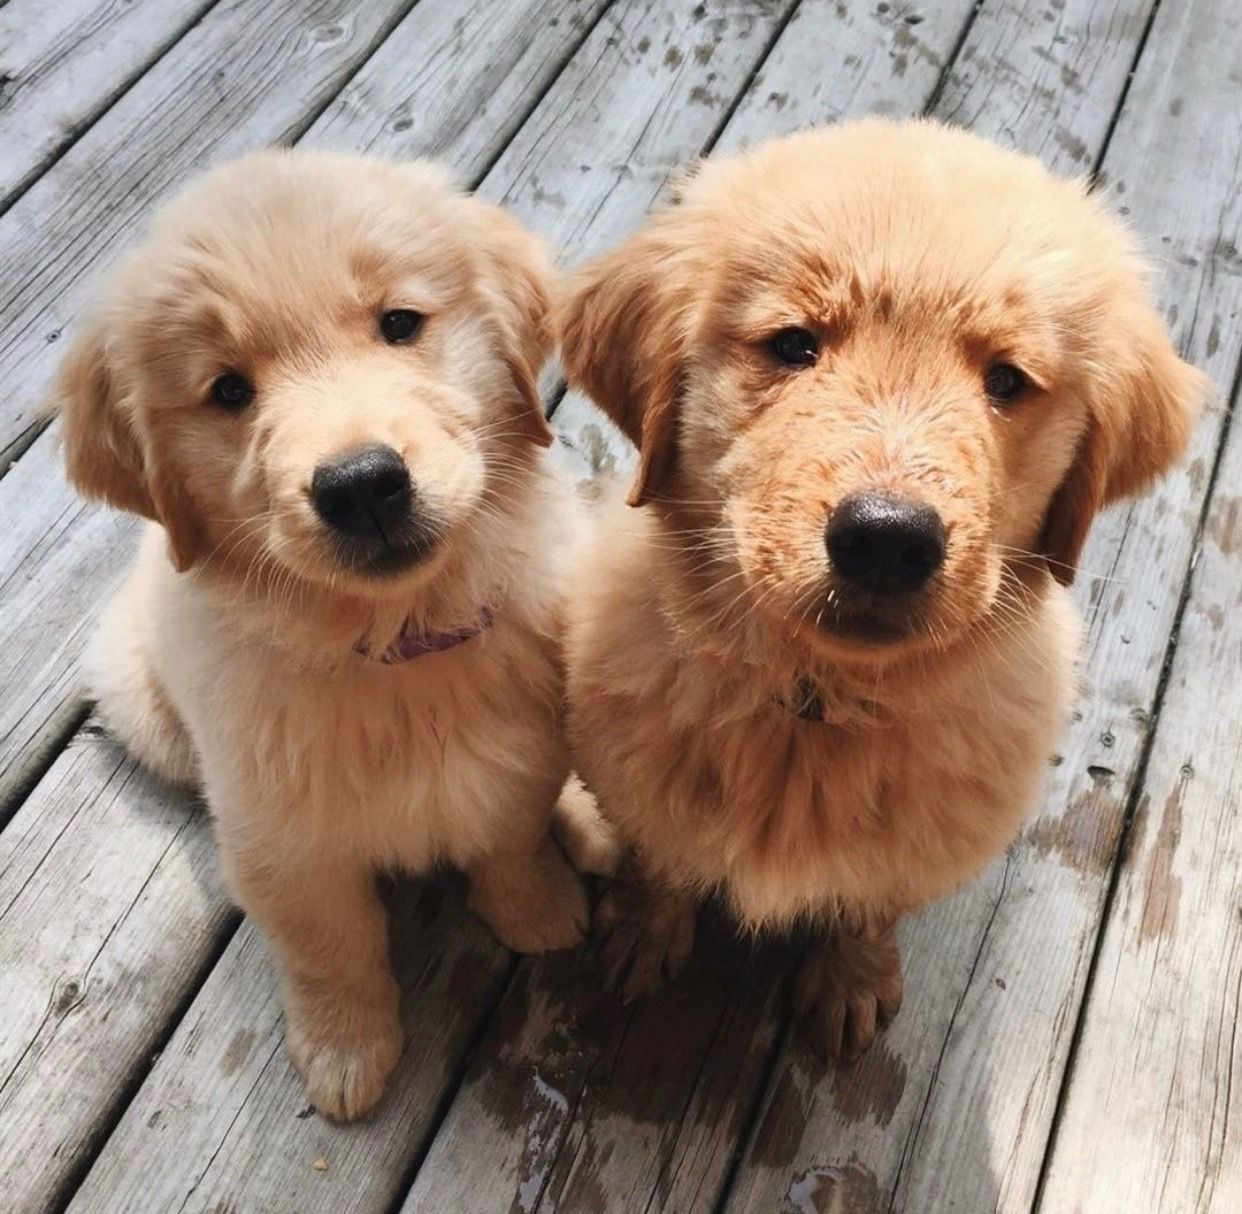 Not One But Two Perfect Golden Retriever Puppies Looking Like The